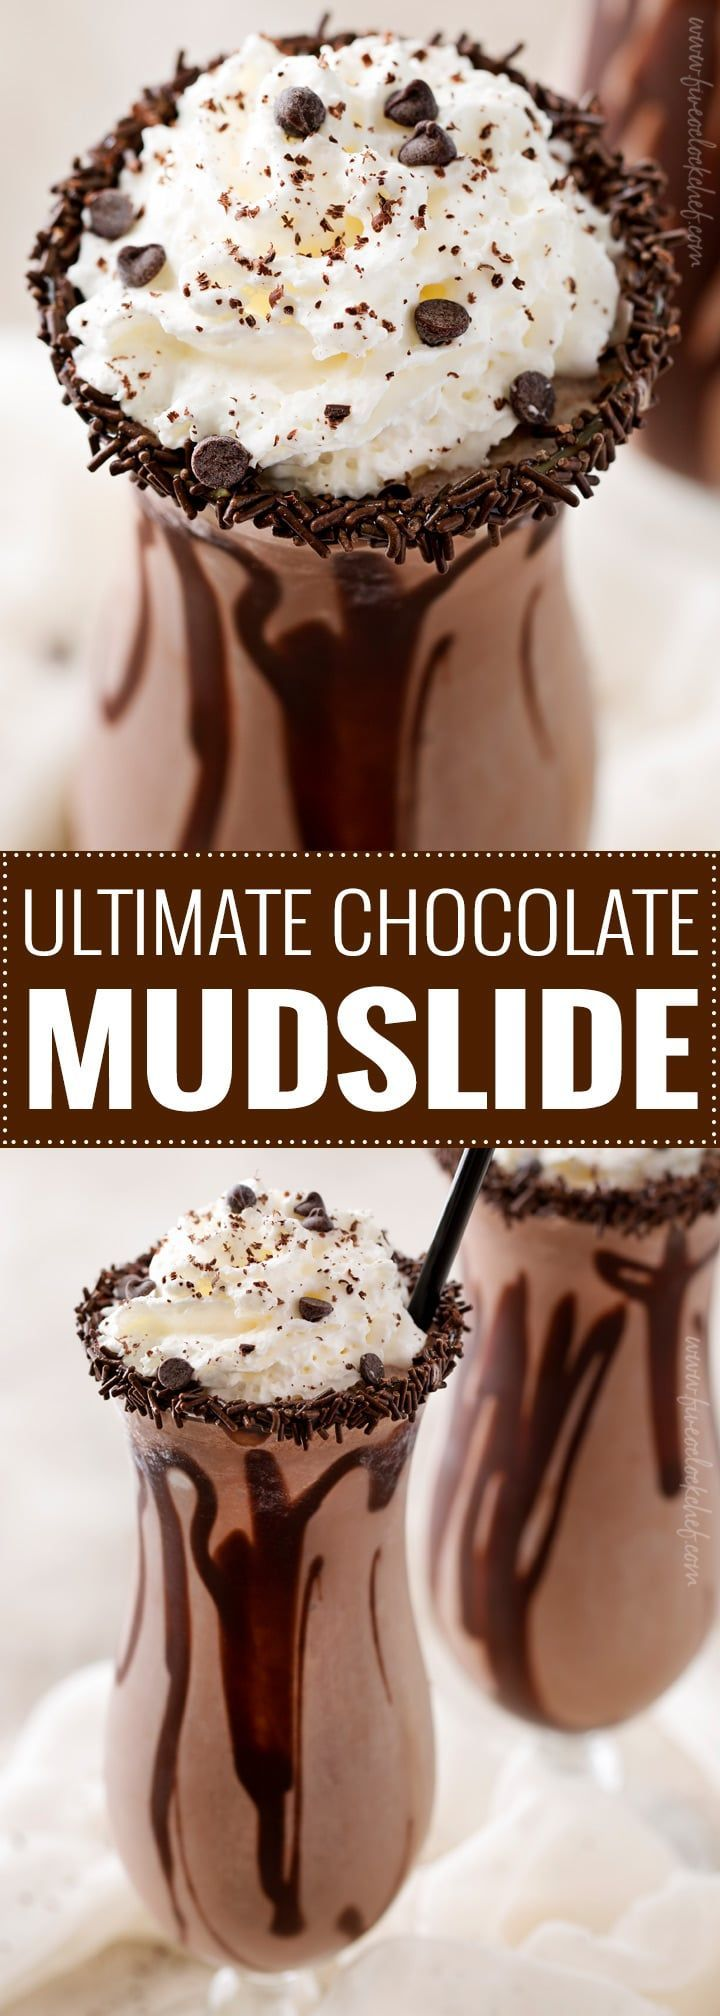 The Ultimate Frozen Chocolate Mudslide | Thick, rich, and delicious this mudslide recipe is made extra chocolatey with the addition of some chocolate vodka, creme de cacao, and chocolate ice cream! There's nothing better than a boozy milkshake! | The 5 o'clock Chef |